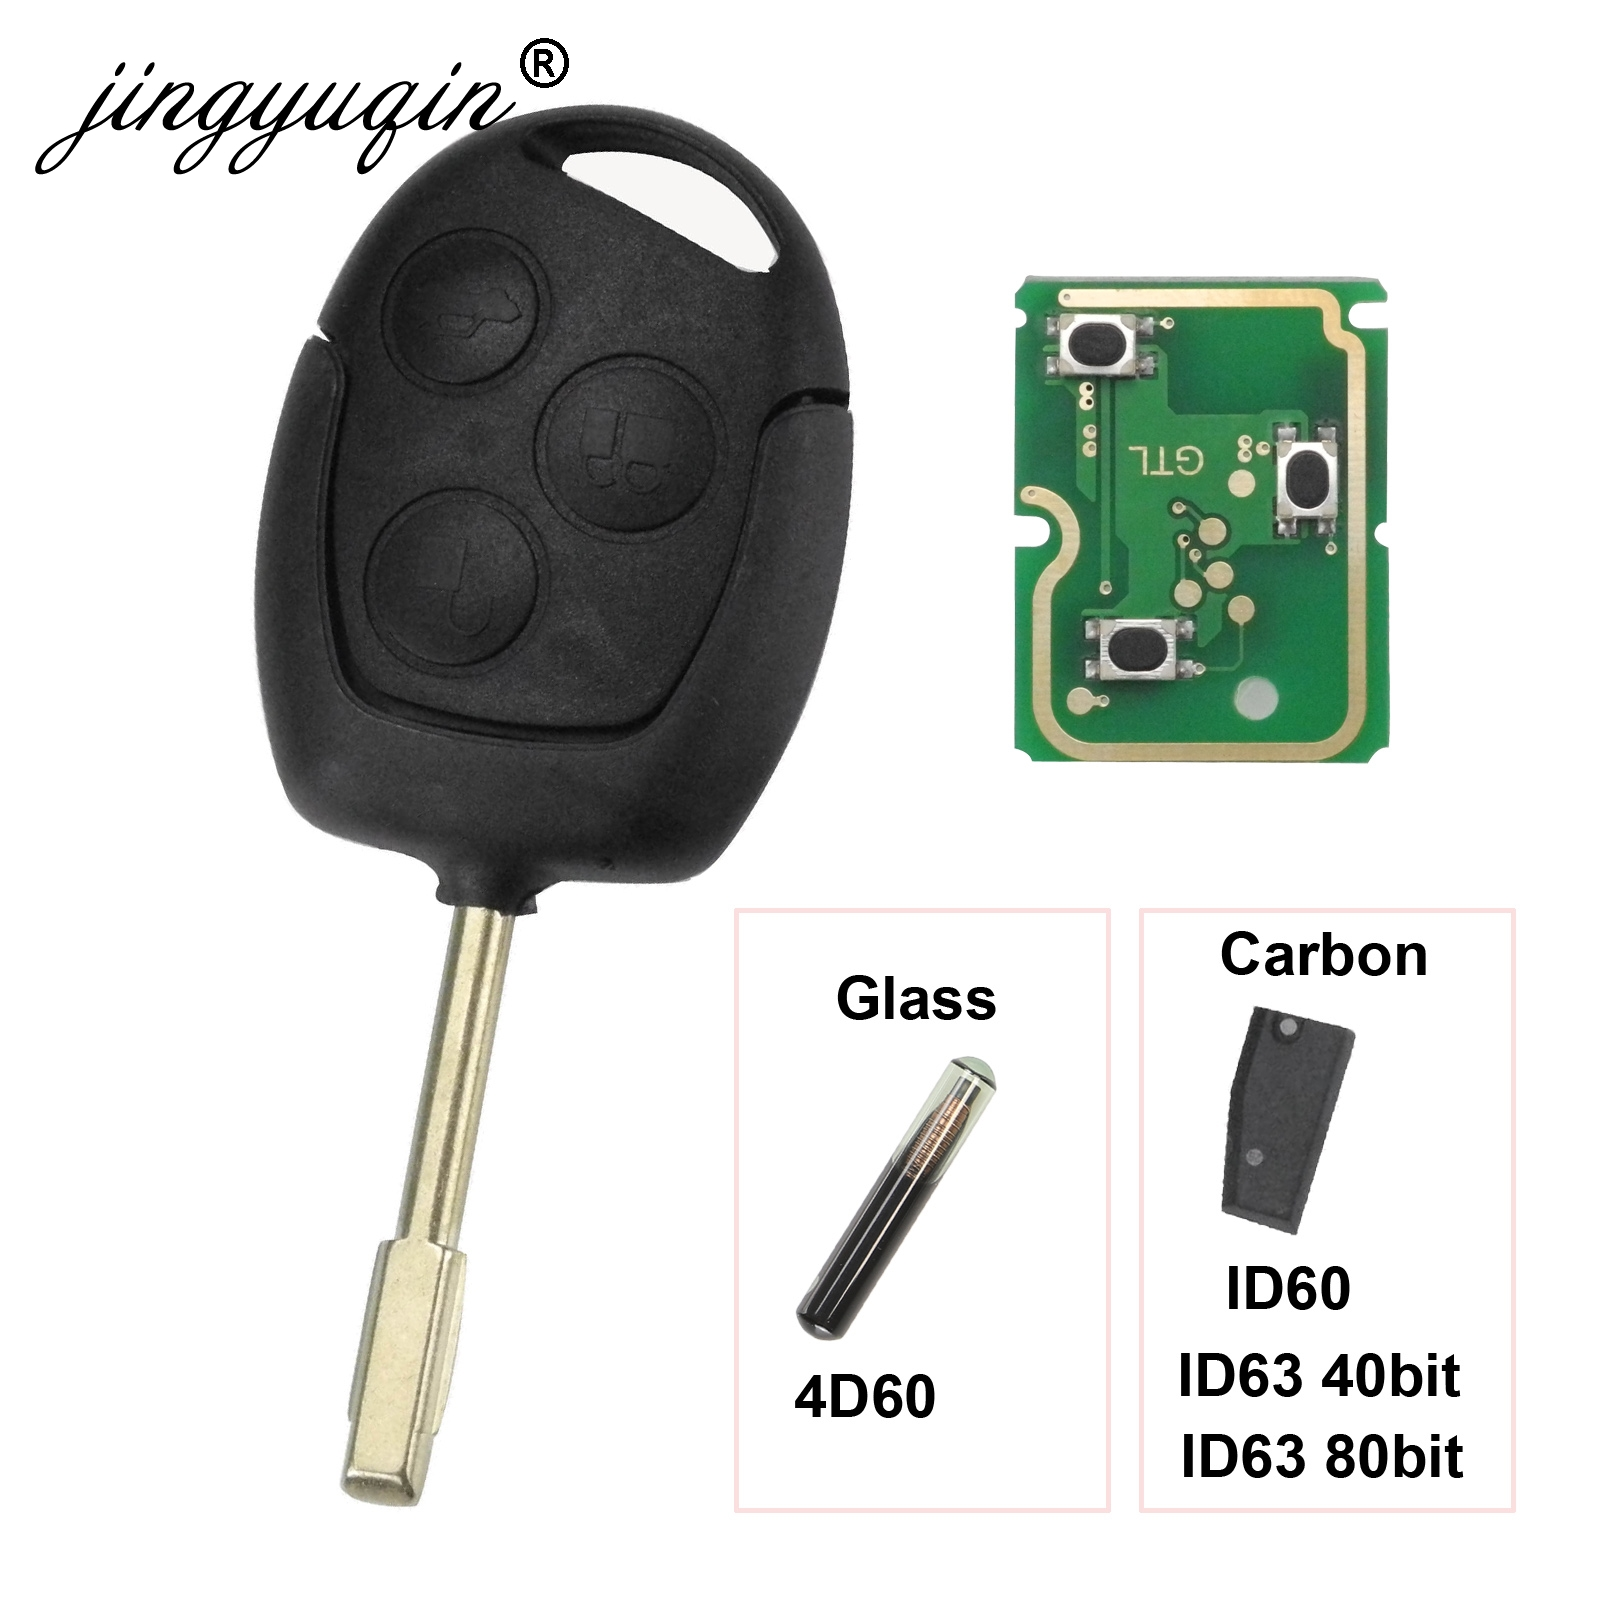 jingyuqin 3 Buttons <font><b>Remote</b></font> <font><b>Key</b></font> Fob 315Mhz 433MHz 4D60 ID63 Chip <font><b>For</b></font> <font><b>Ford</b></font> Mondeo <font><b>Focus</b></font> Fusion Fiesta Galaxy Transit Full Car <font><b>Key</b></font> image